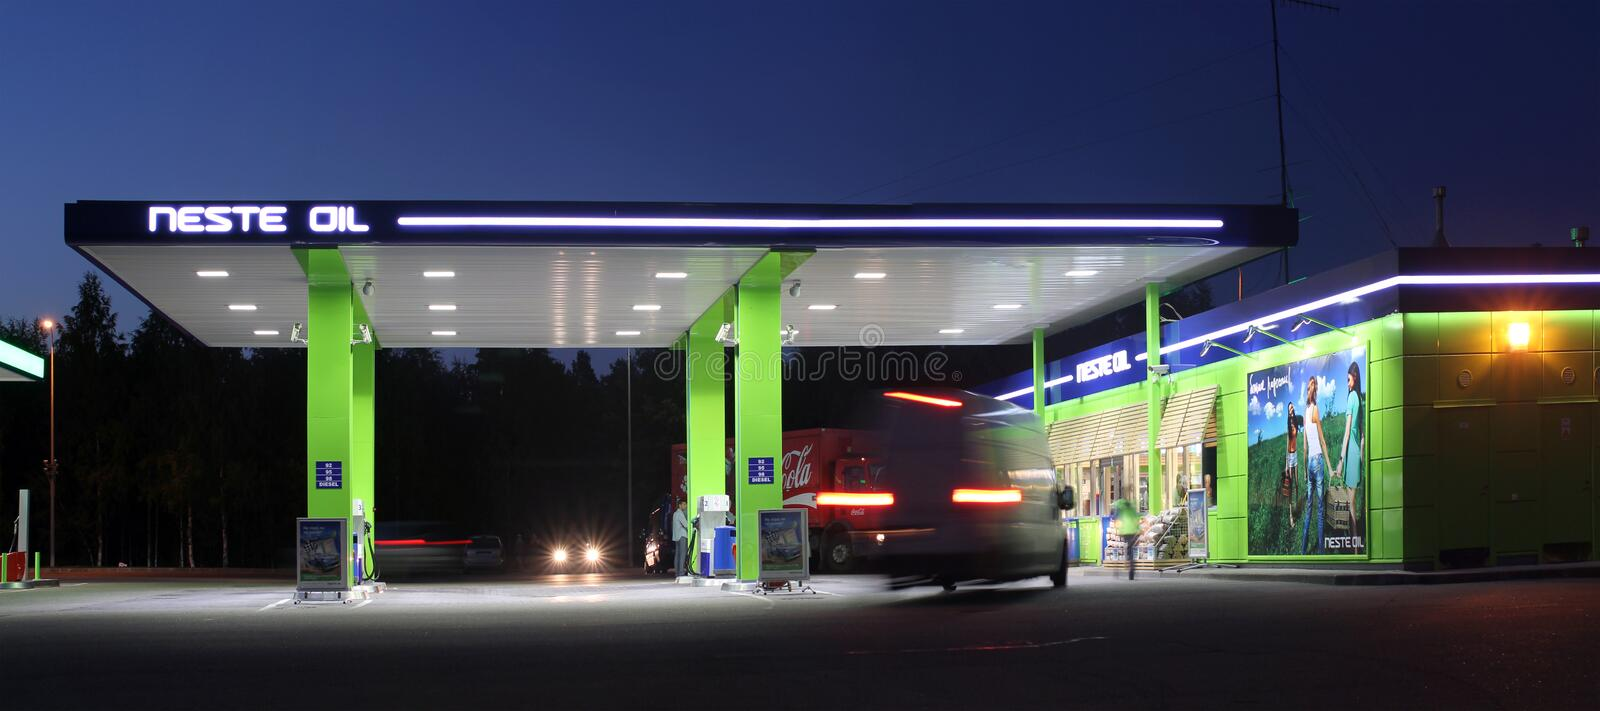 Oil station in the night. Oil station of the NESTE OIL company in the night royalty free stock images